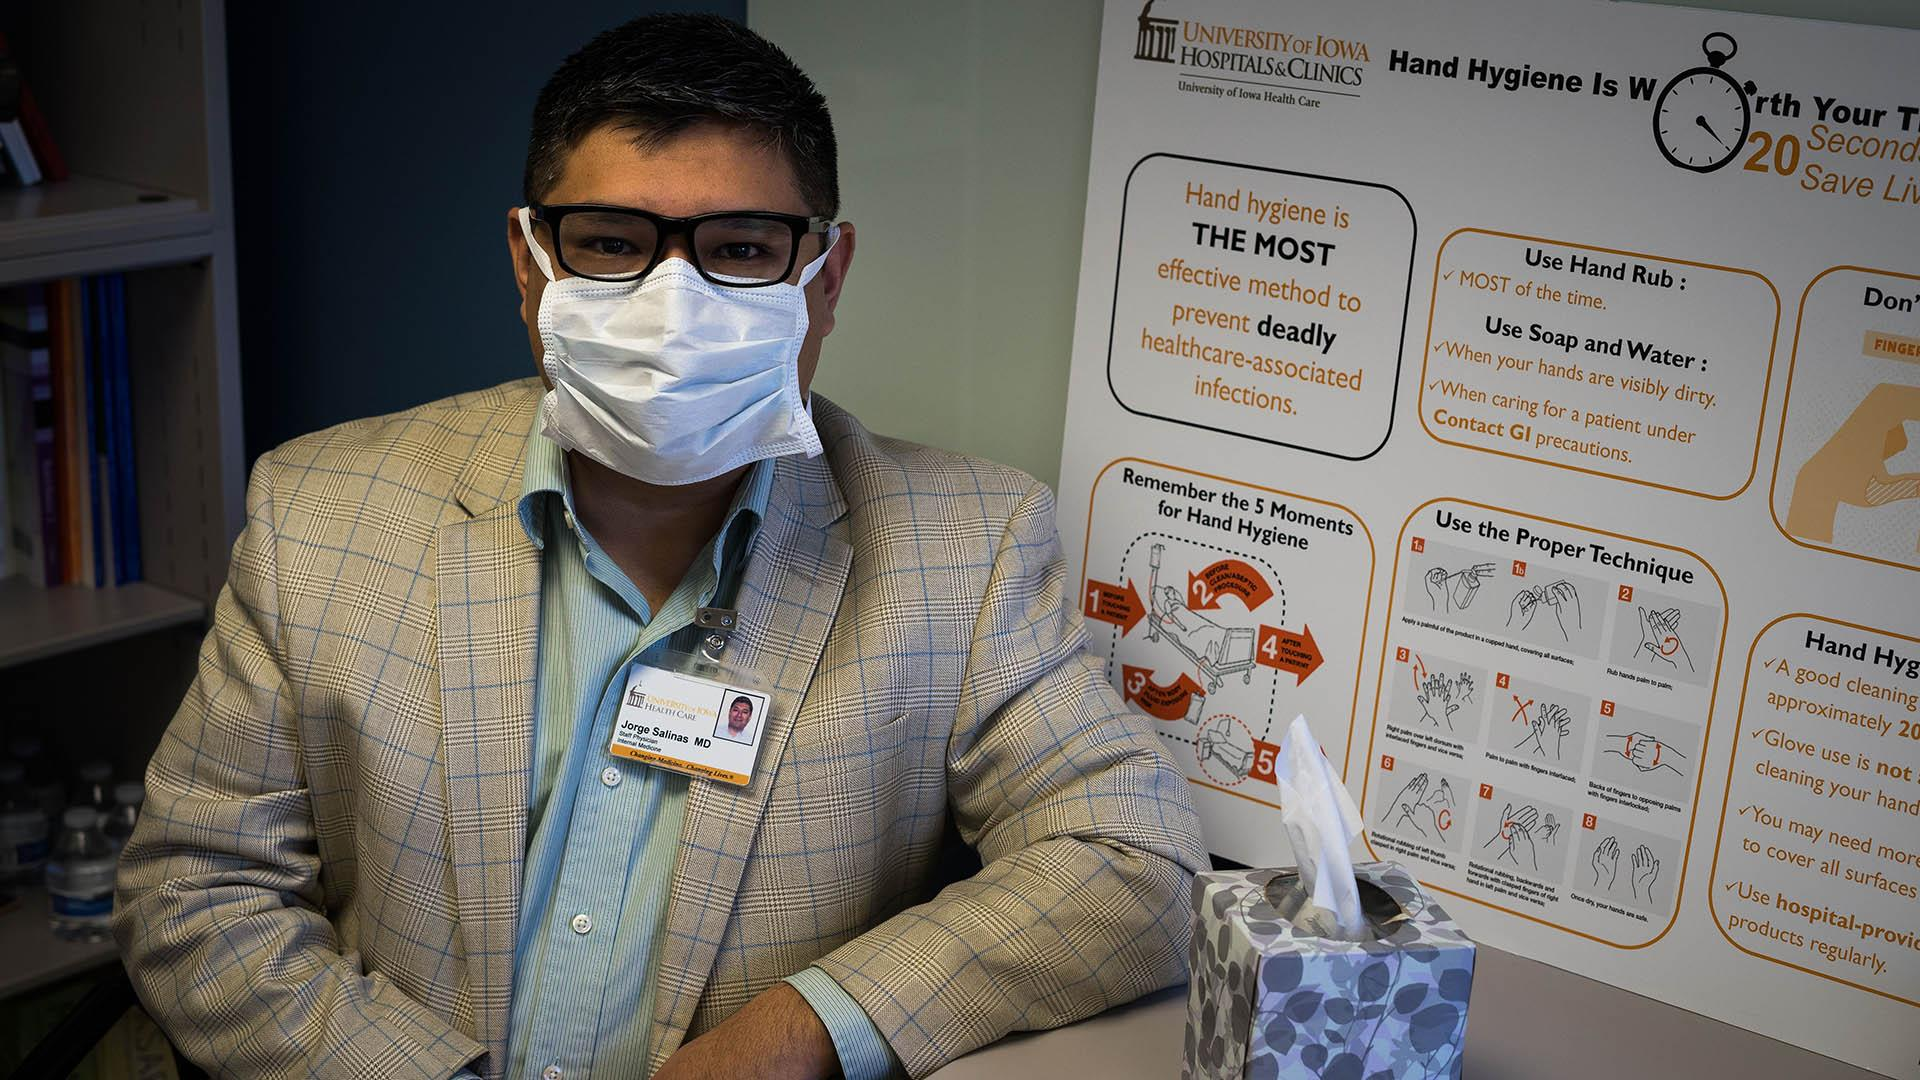 University of Iowa Clinical Assistant Professor Dr. Jorge Salinas poses for a portrait in his office on Wednesday, March 7. Salinas is an Infectious Disease Specialist at the University of Iowa. (Matthew Finley/The Daily Iowan)